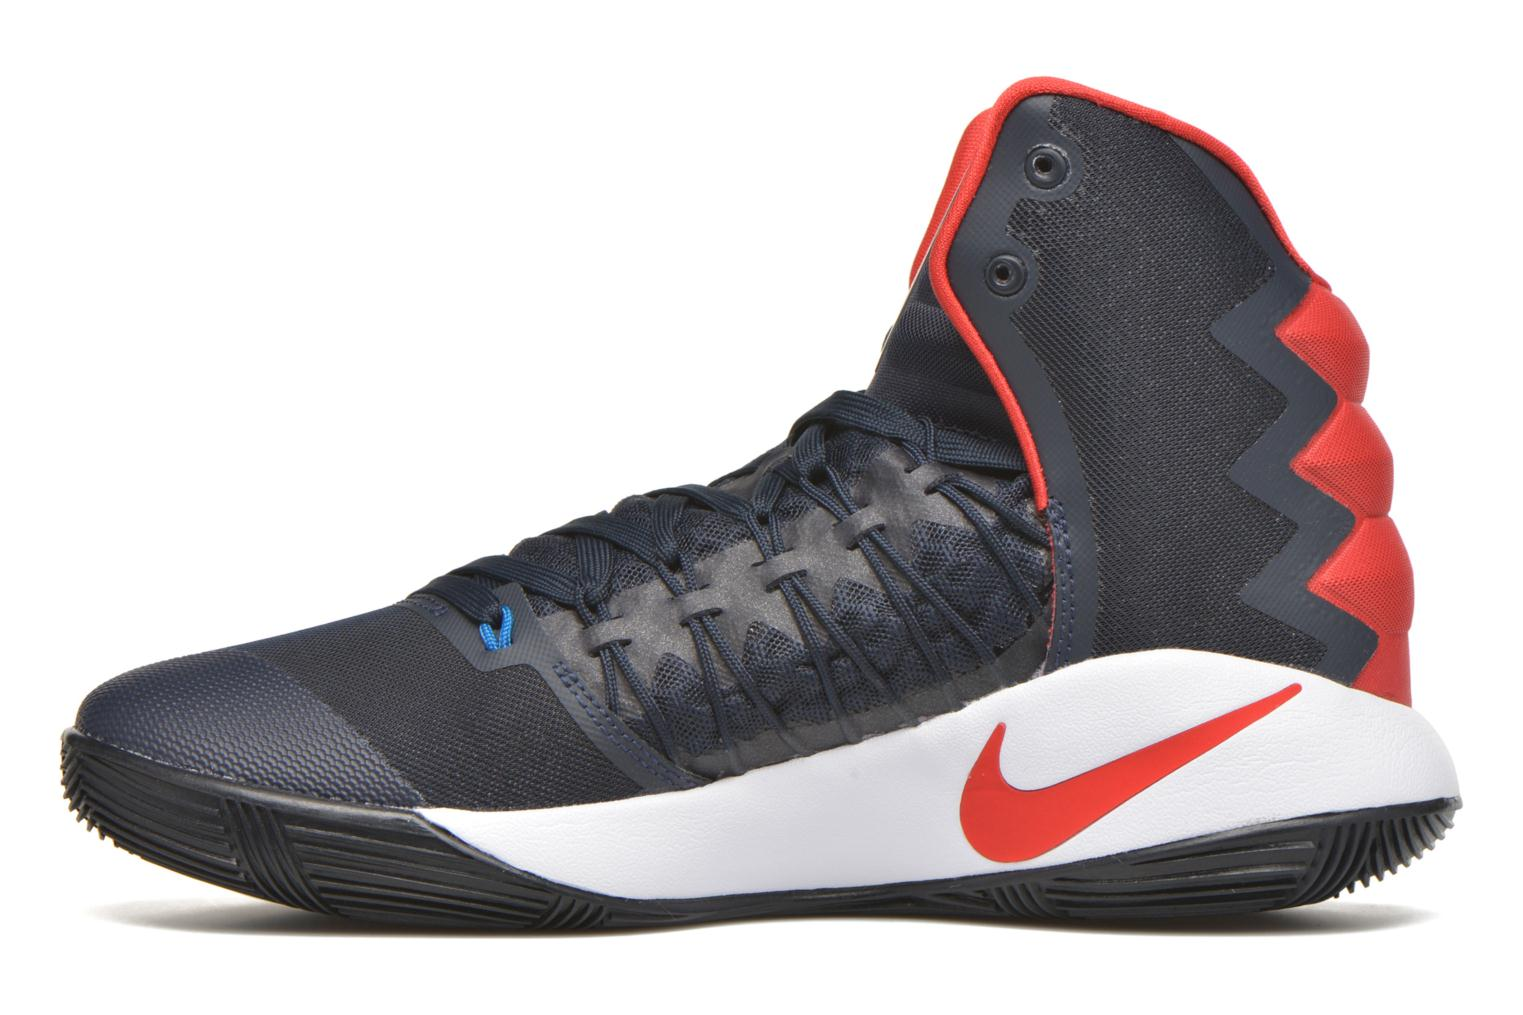 Nike Hyperdunk 2016 Drk Obsdn/Drk Obsdn-Brght Crms